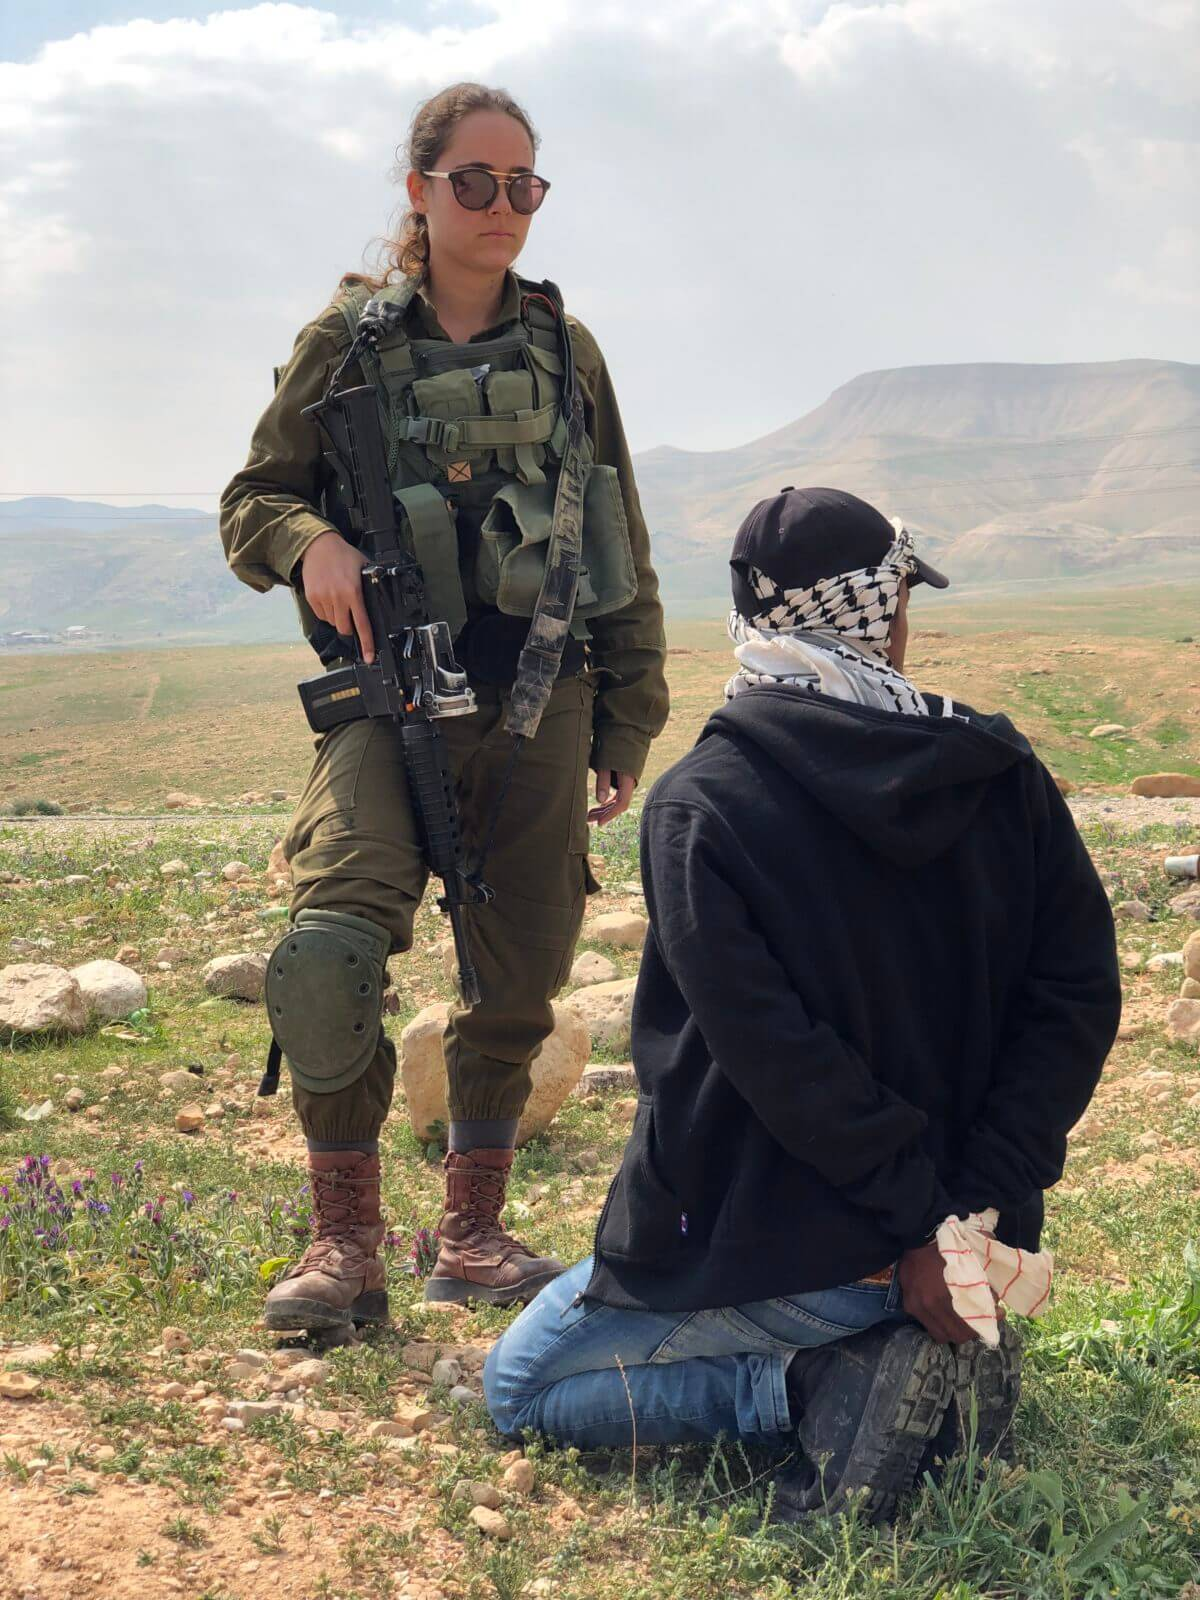 An Israeli soldier guards the Palestinian shepherd, Mohammed in the moments before he is taken to a nearby army base. (Photo: Antony Loewenstein)